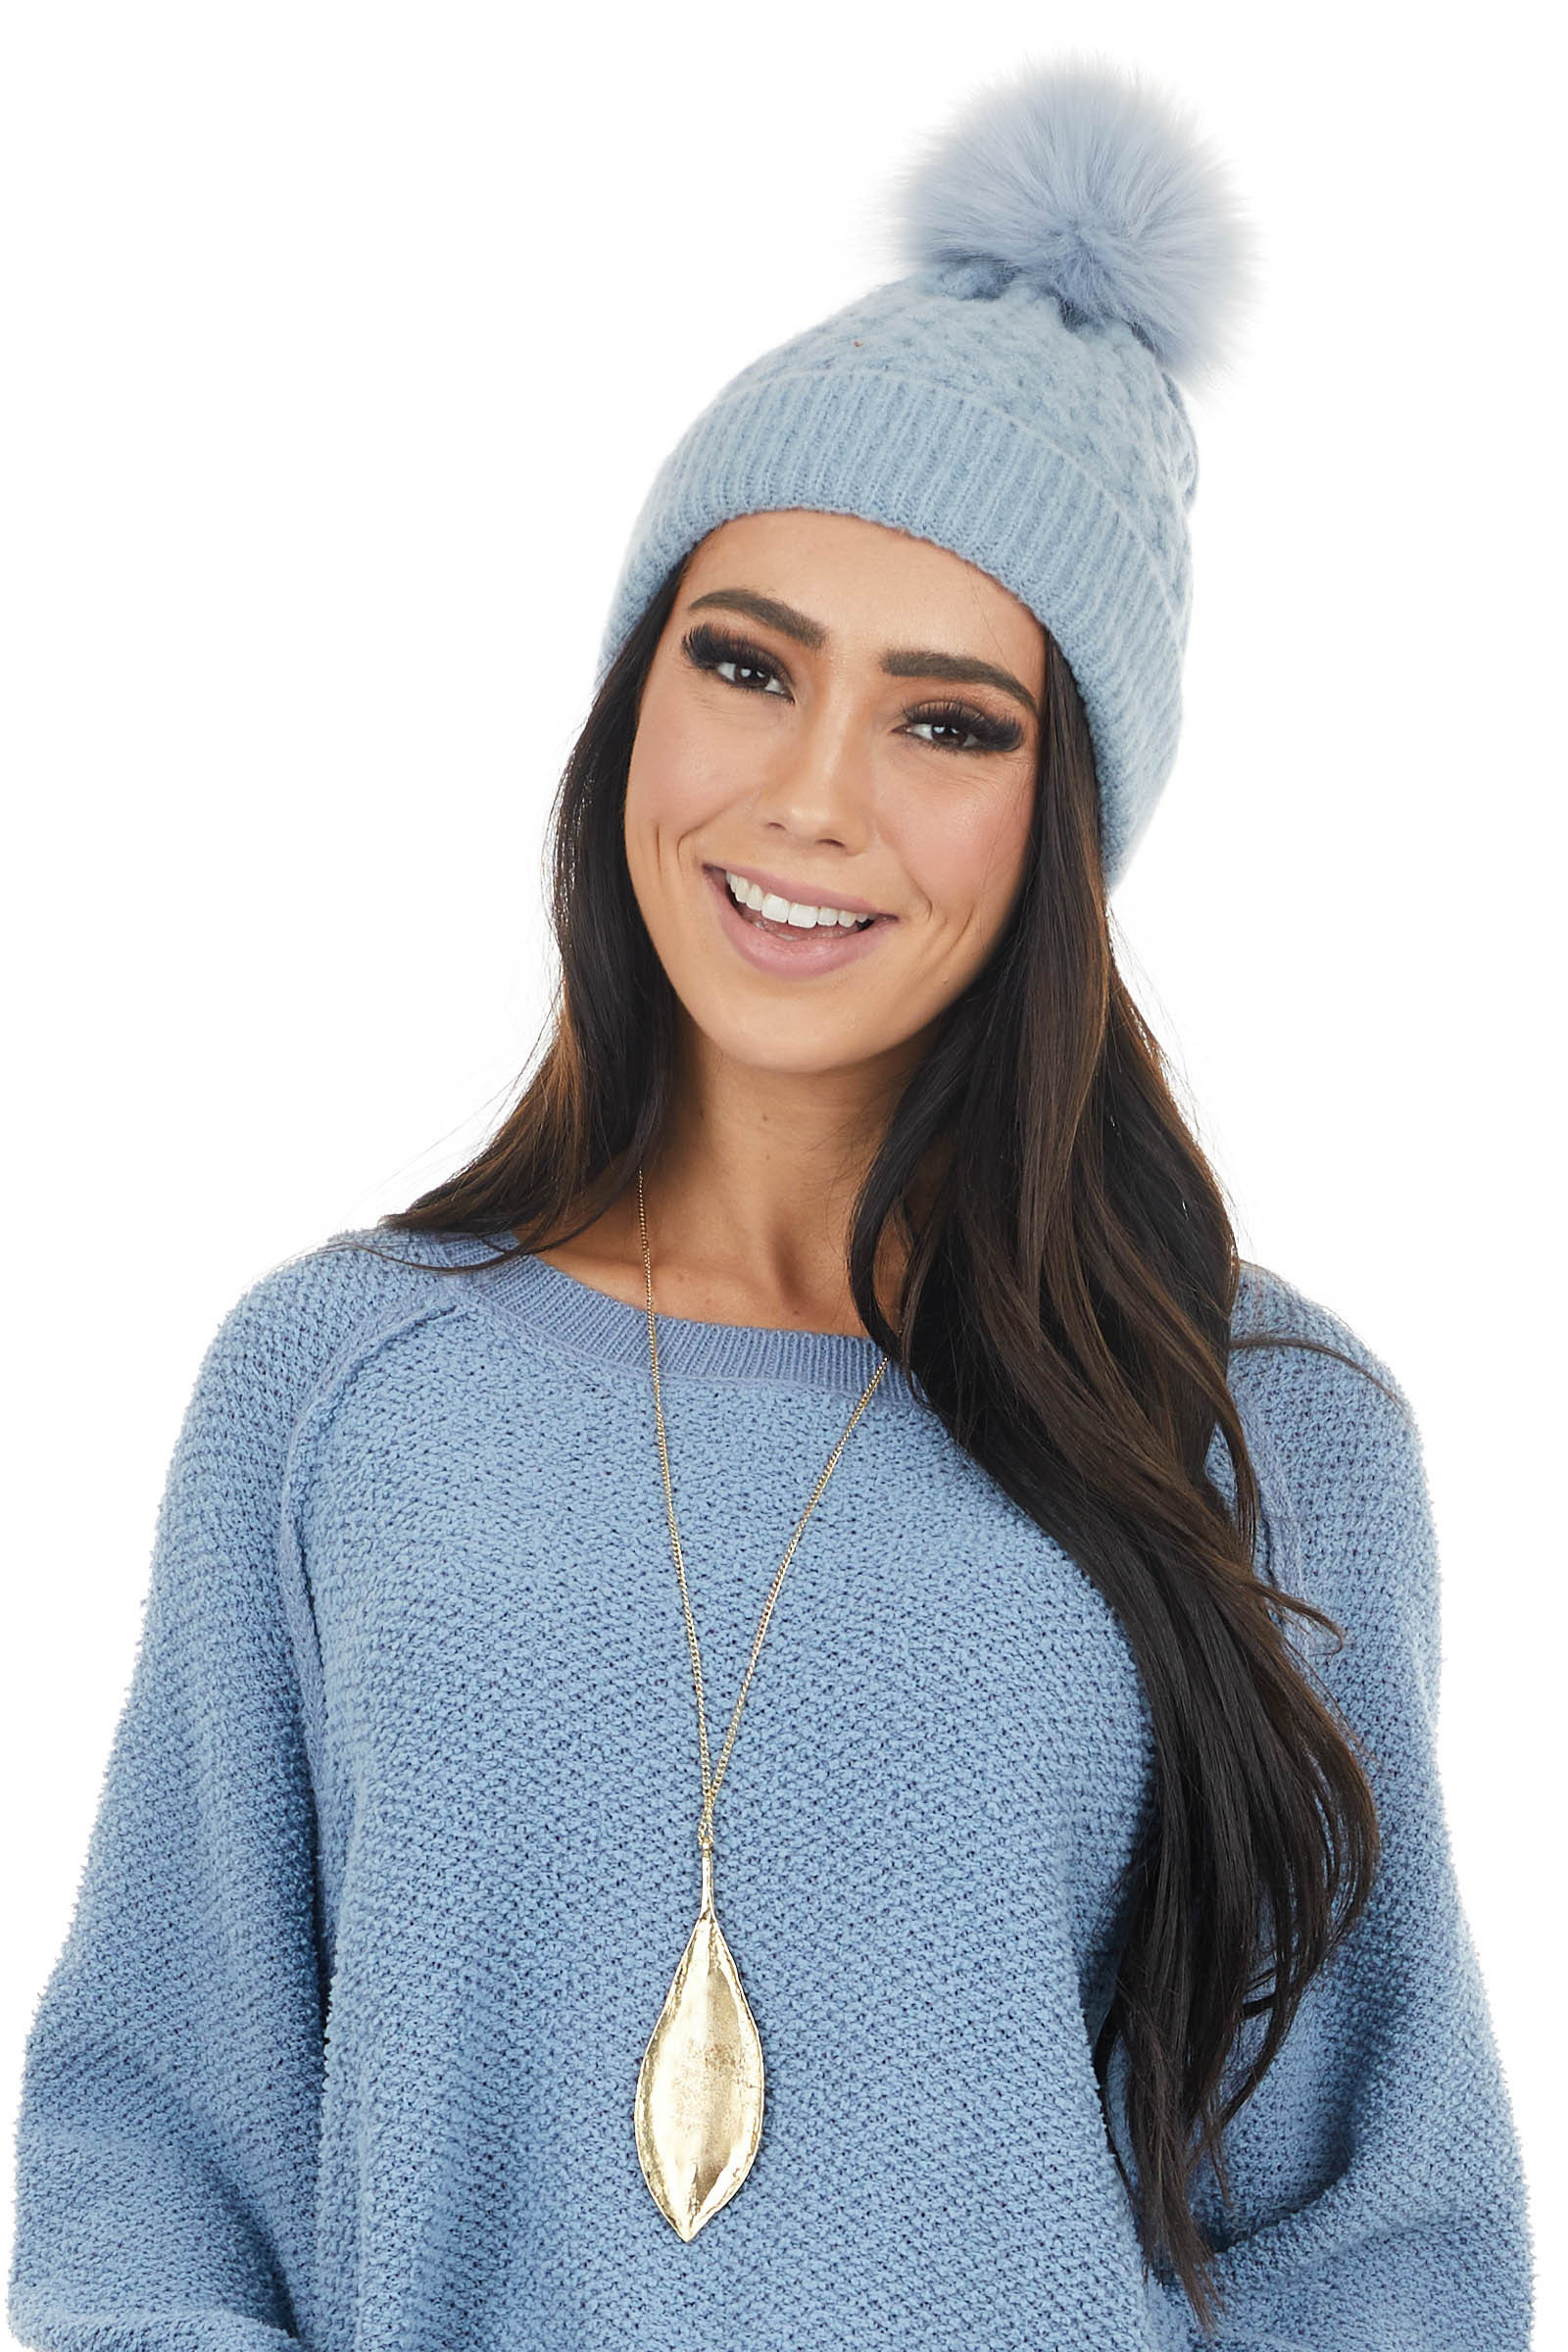 Dusty Blue Textured Knit Beanie with Faux Fur Pom Pom